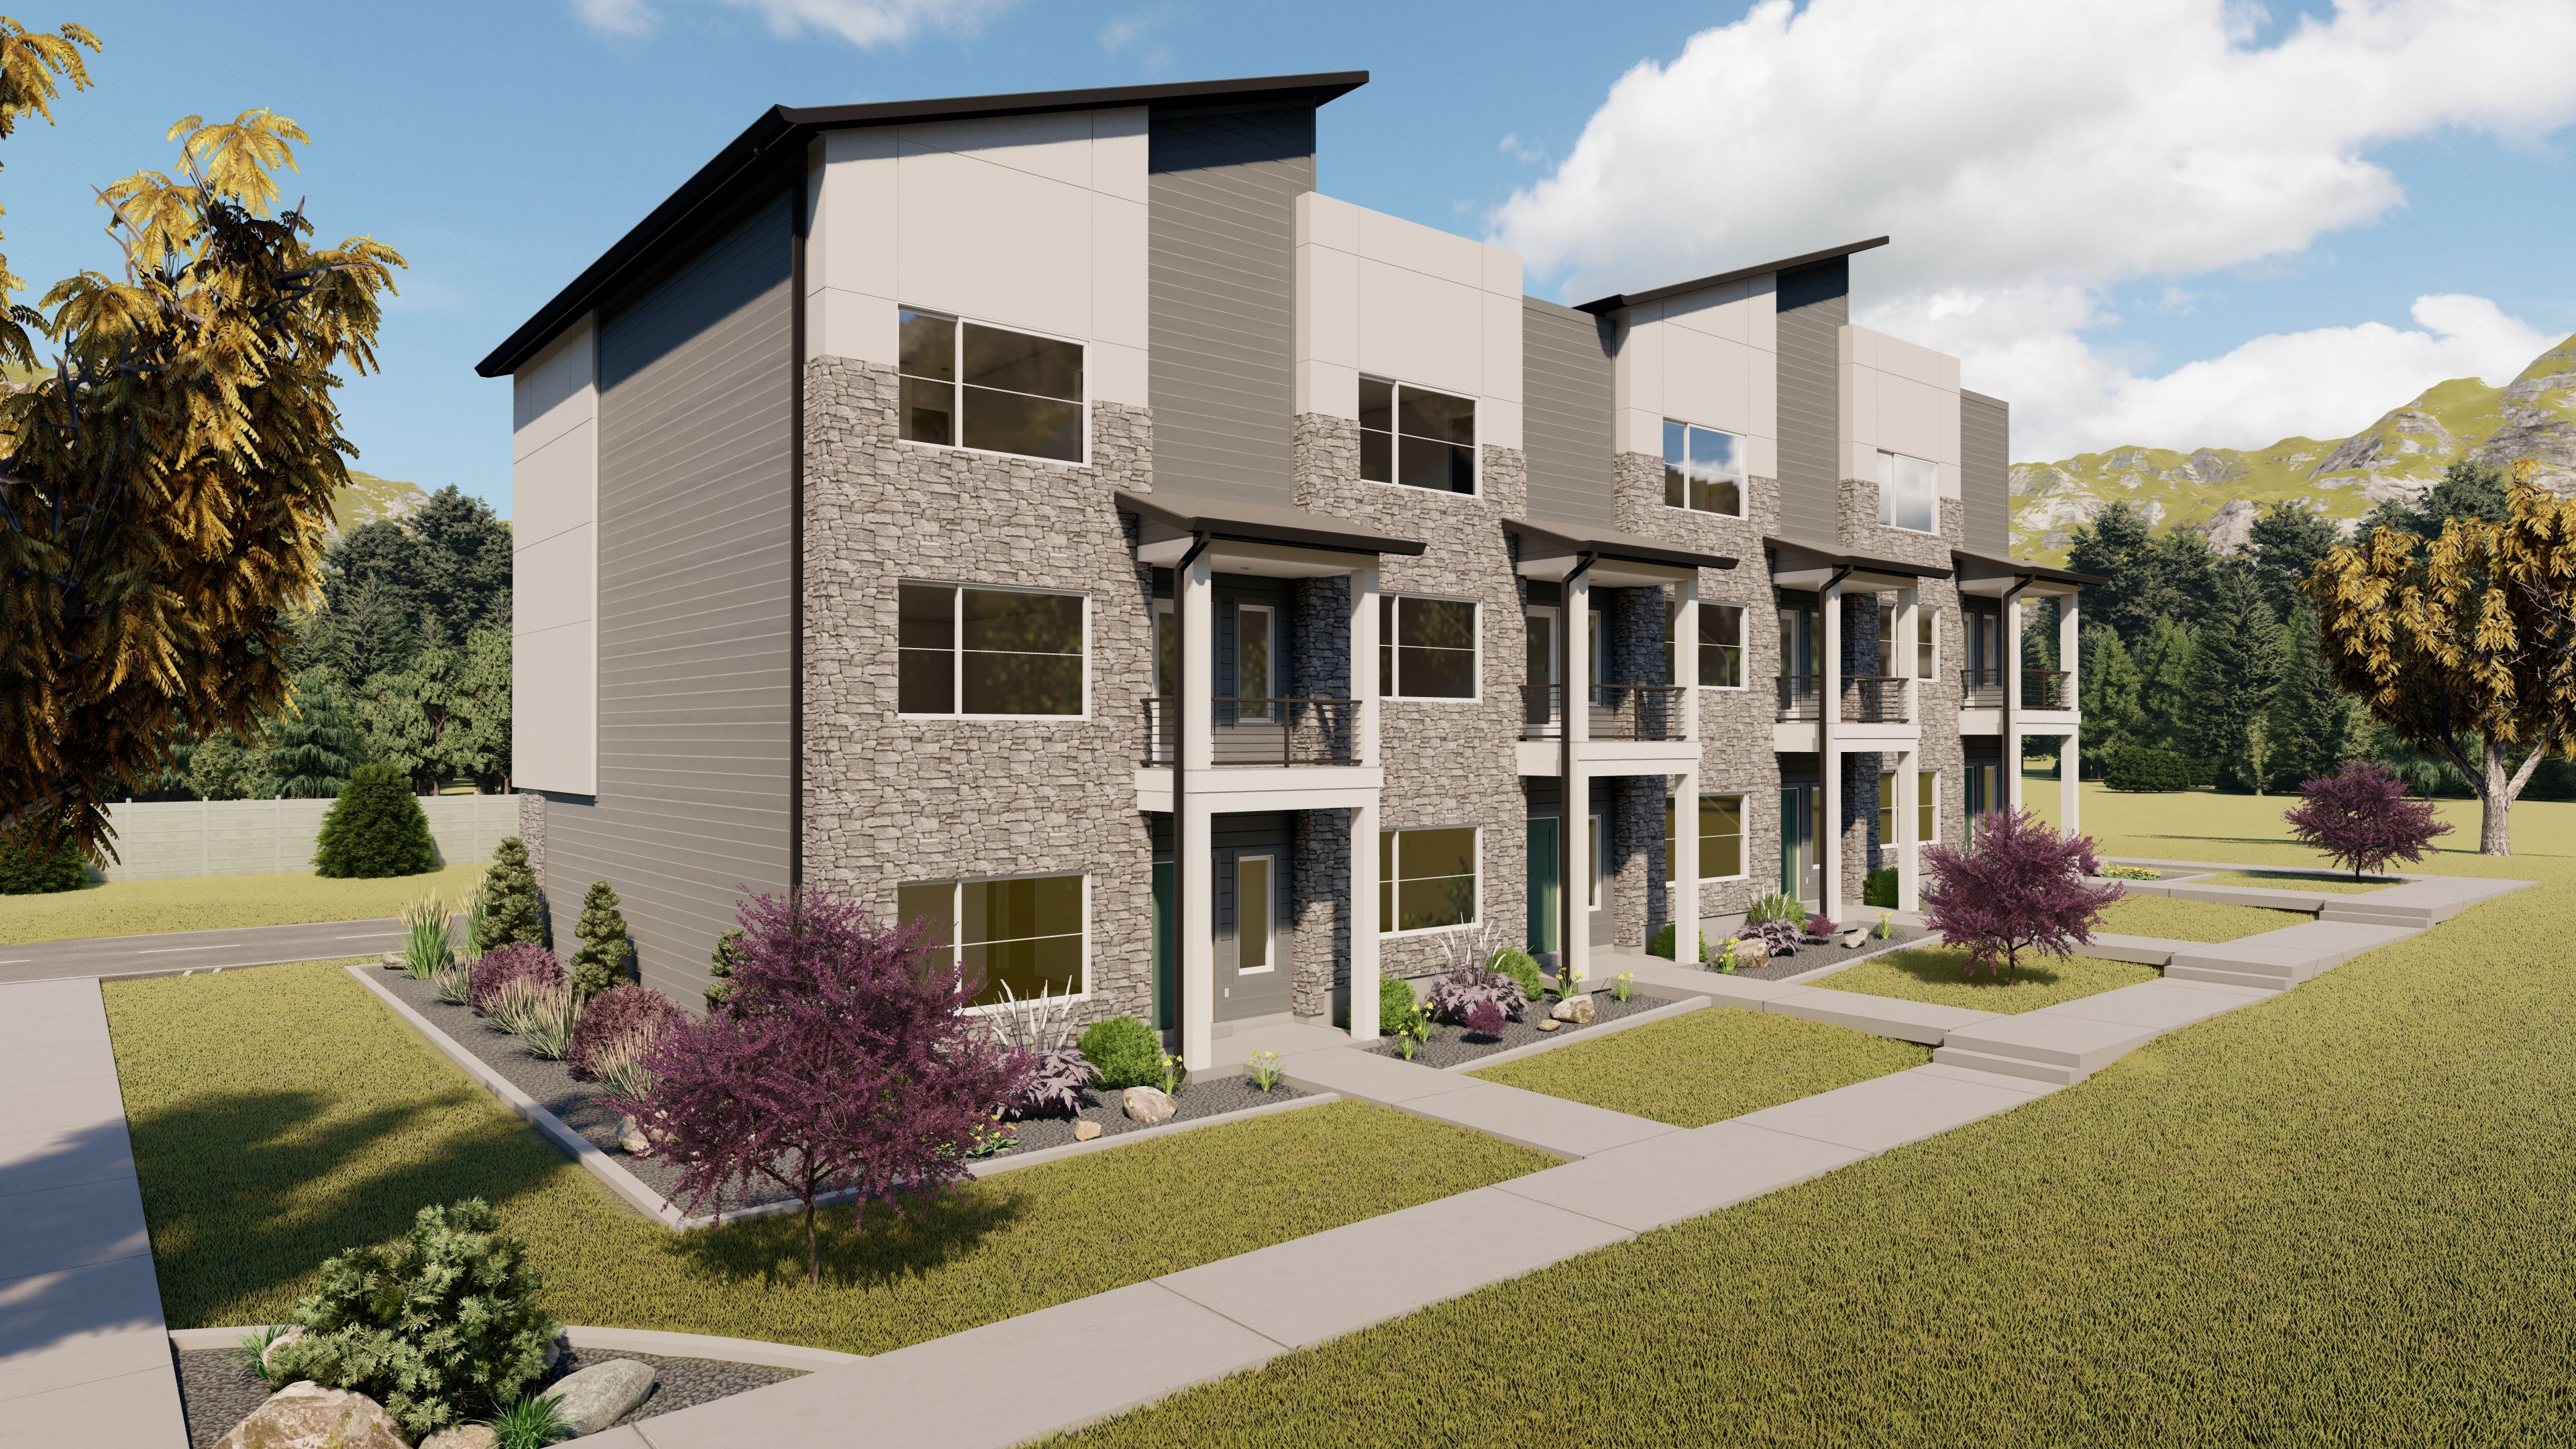 Exterior featured in the Indigo Bend Townhomes By Visionary Homes in Logan, UT